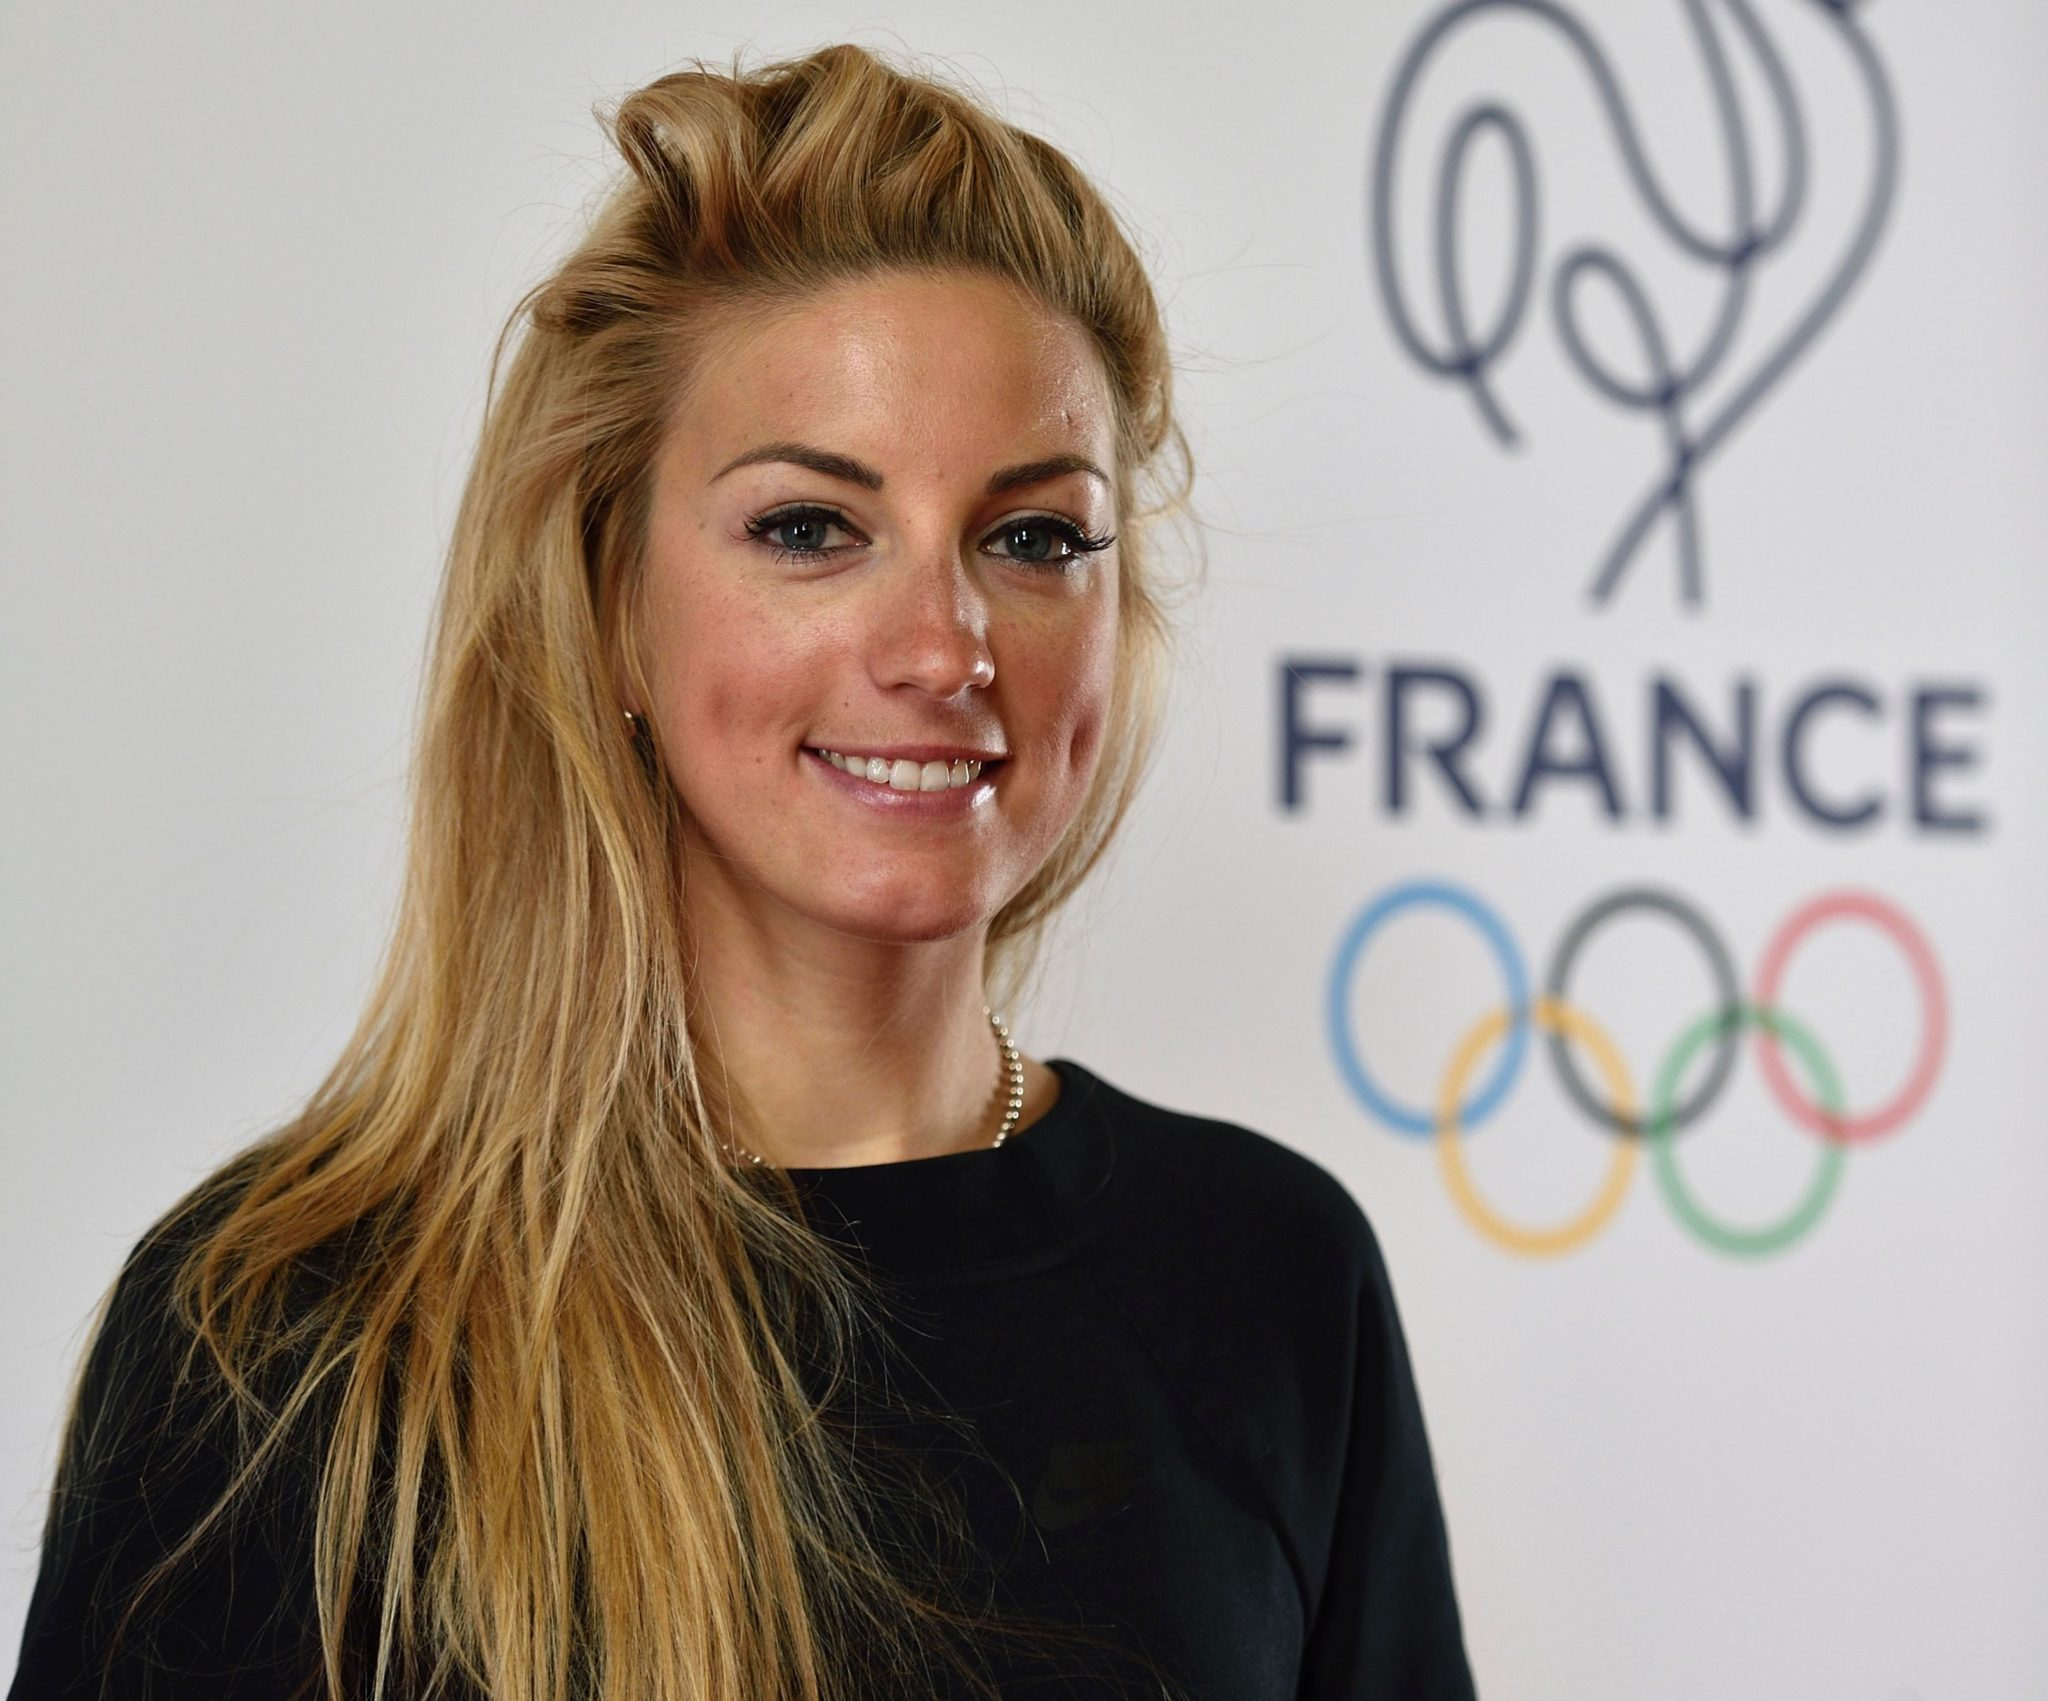 French cyclist Pauline Ferrand-Prevot poses on April 27, 2016, at the Palais Chaillot in Paris, during the French Olympic team's launch of their 100-day countdown to the opening of the 2016 Rio Olympic Games on August 5. / AFP PHOTO / ERIC FEFERBERG